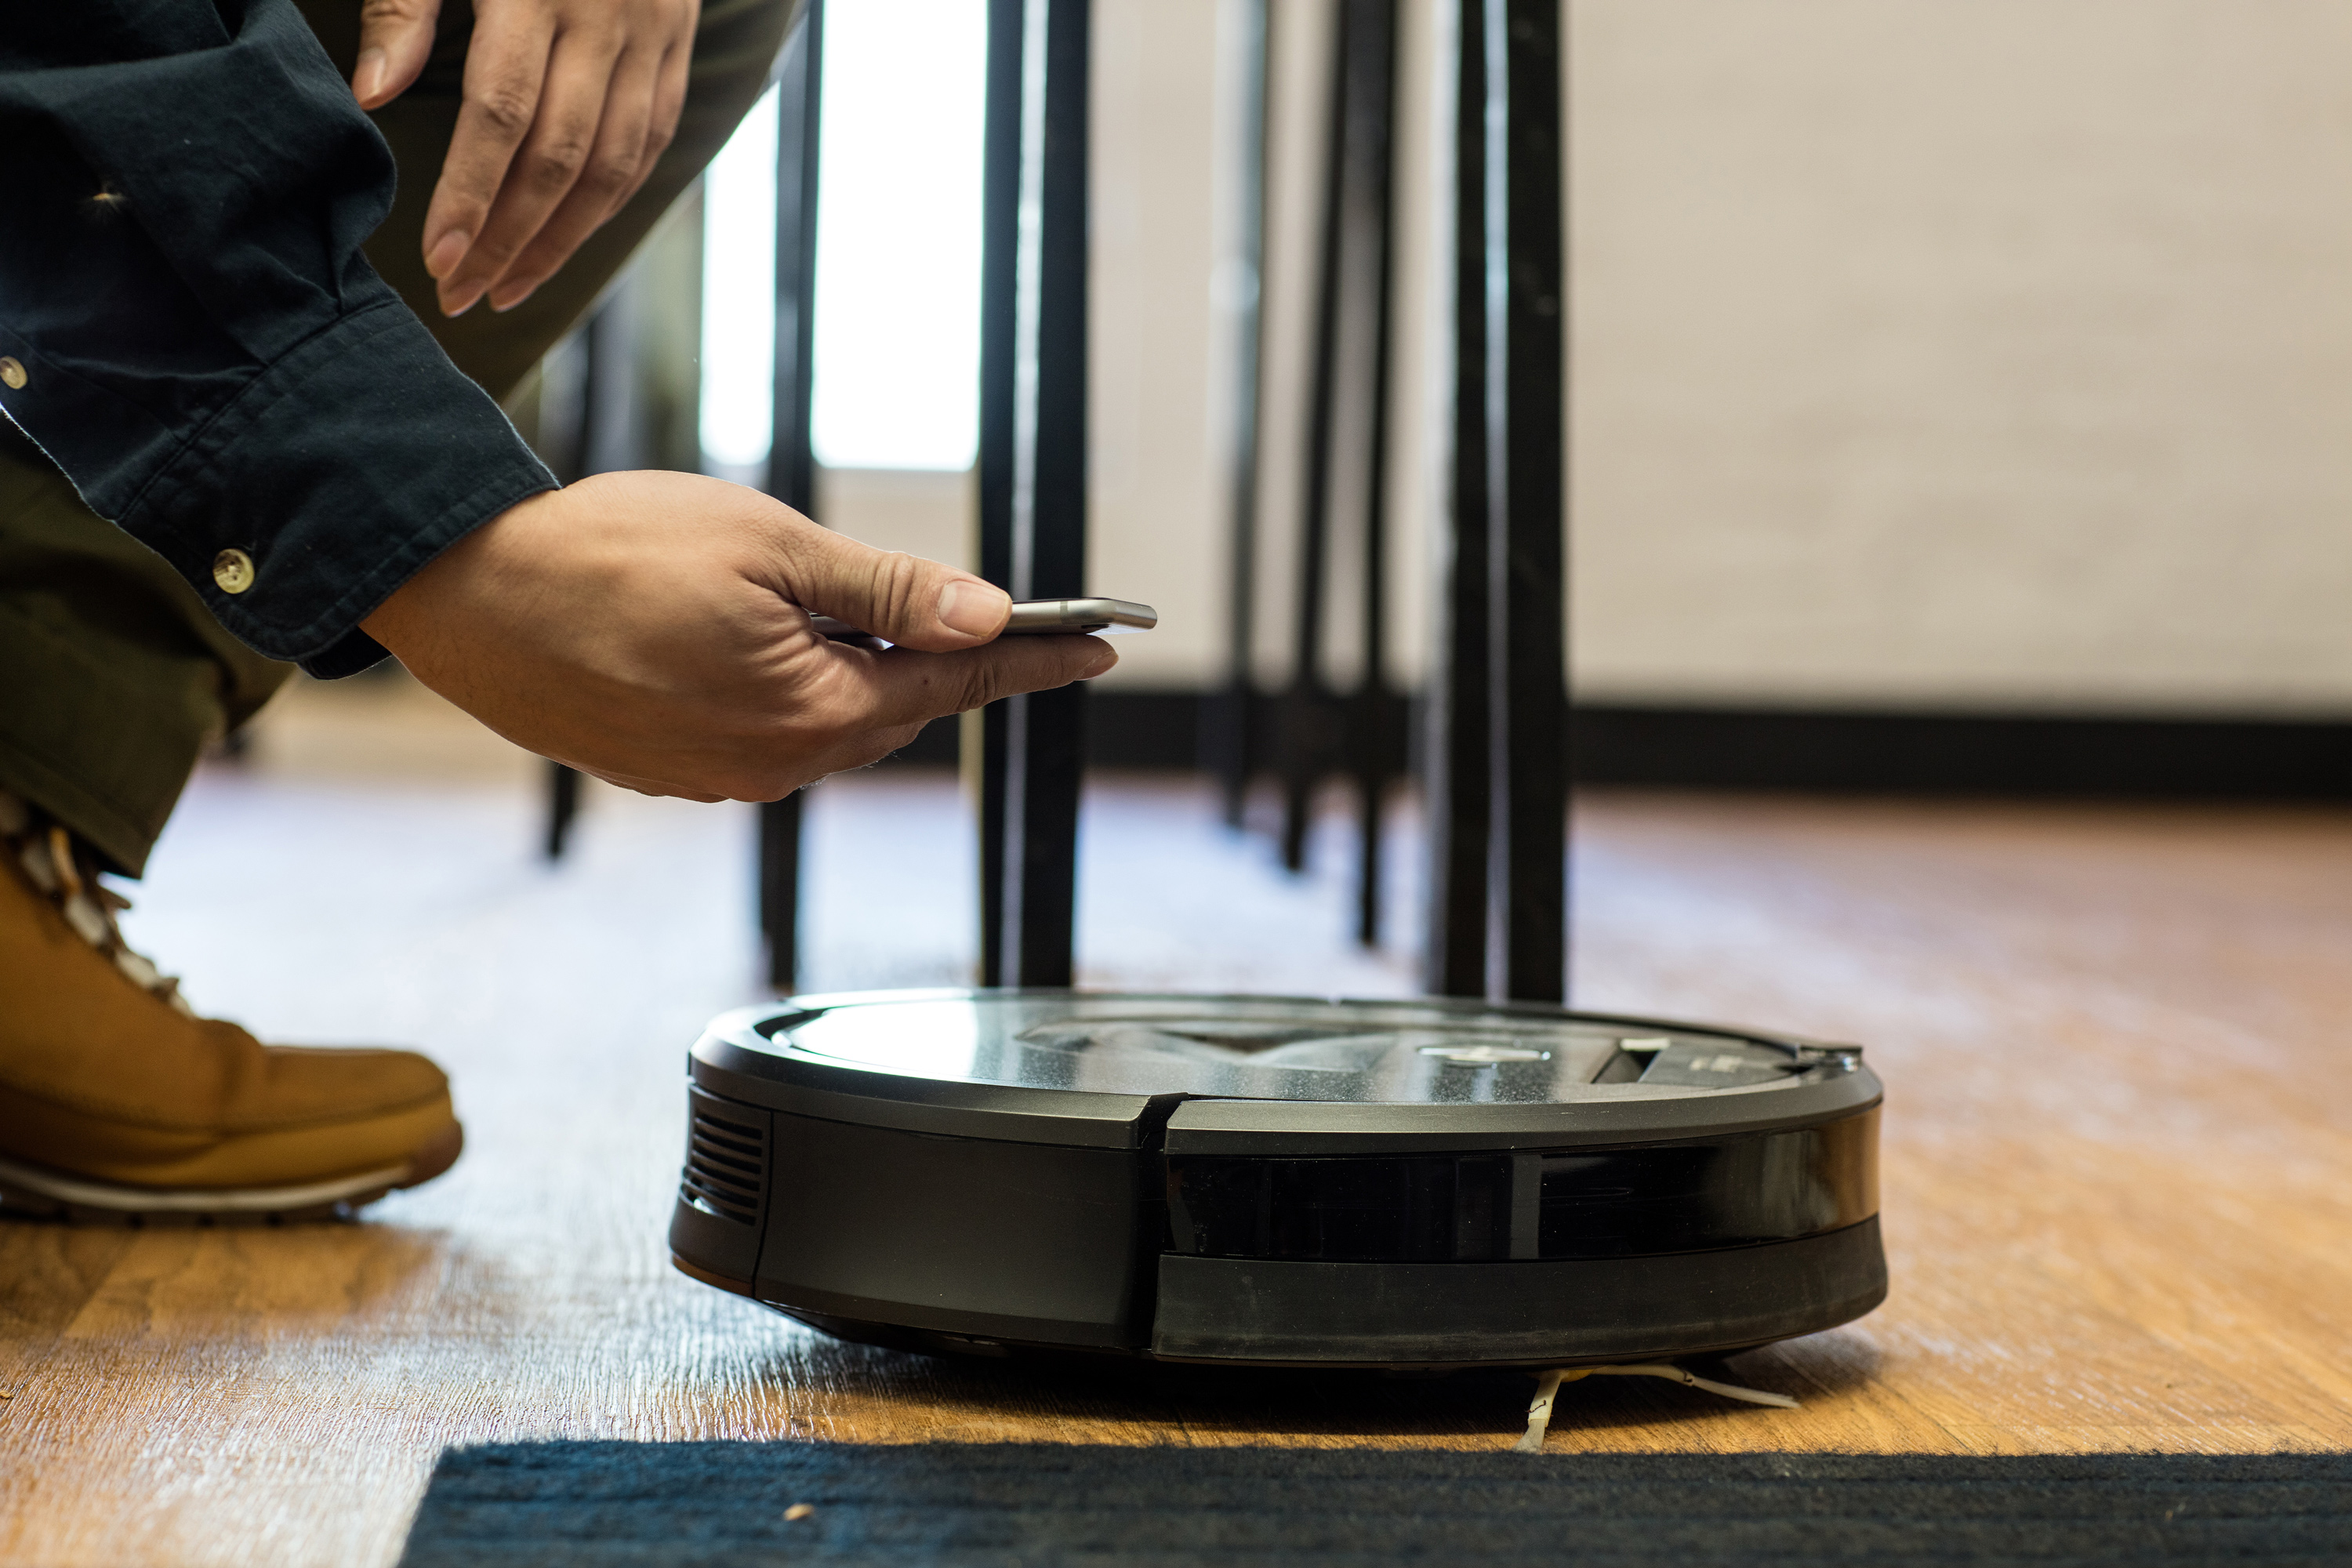 How we test robot vacuums